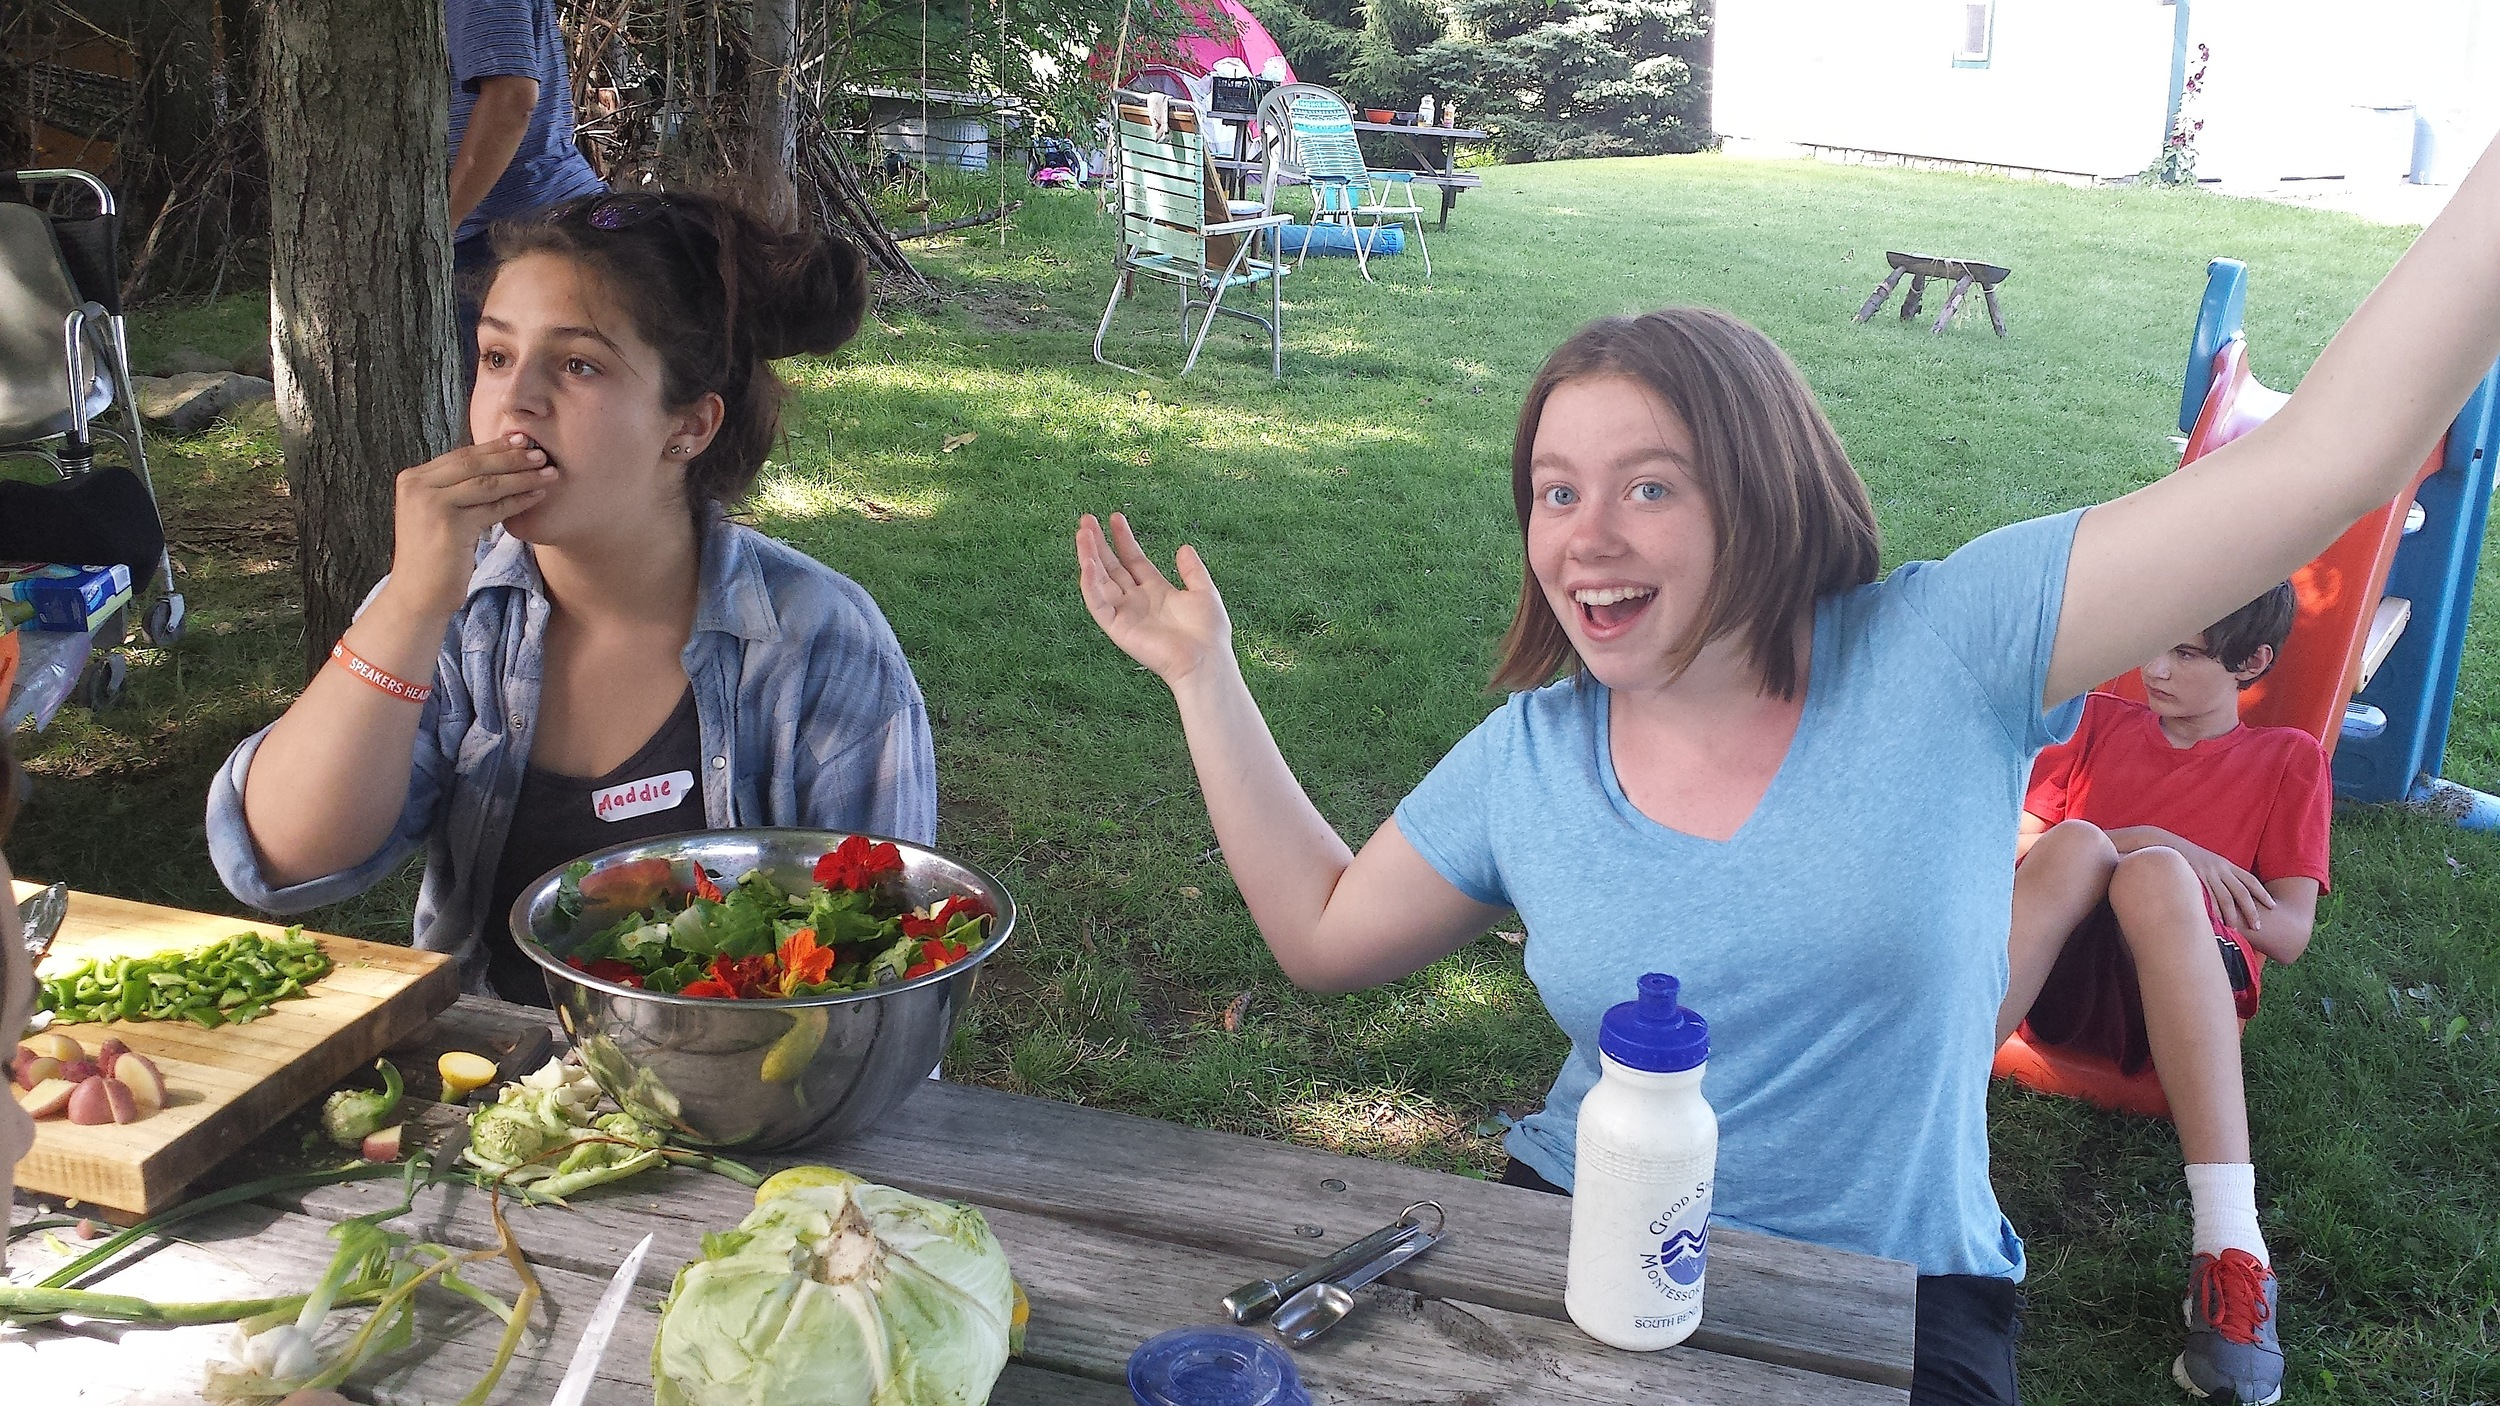 Maddie, left, from Indianapolis, and the author, Julia, on the right, prepare locally sourced food for dinner.